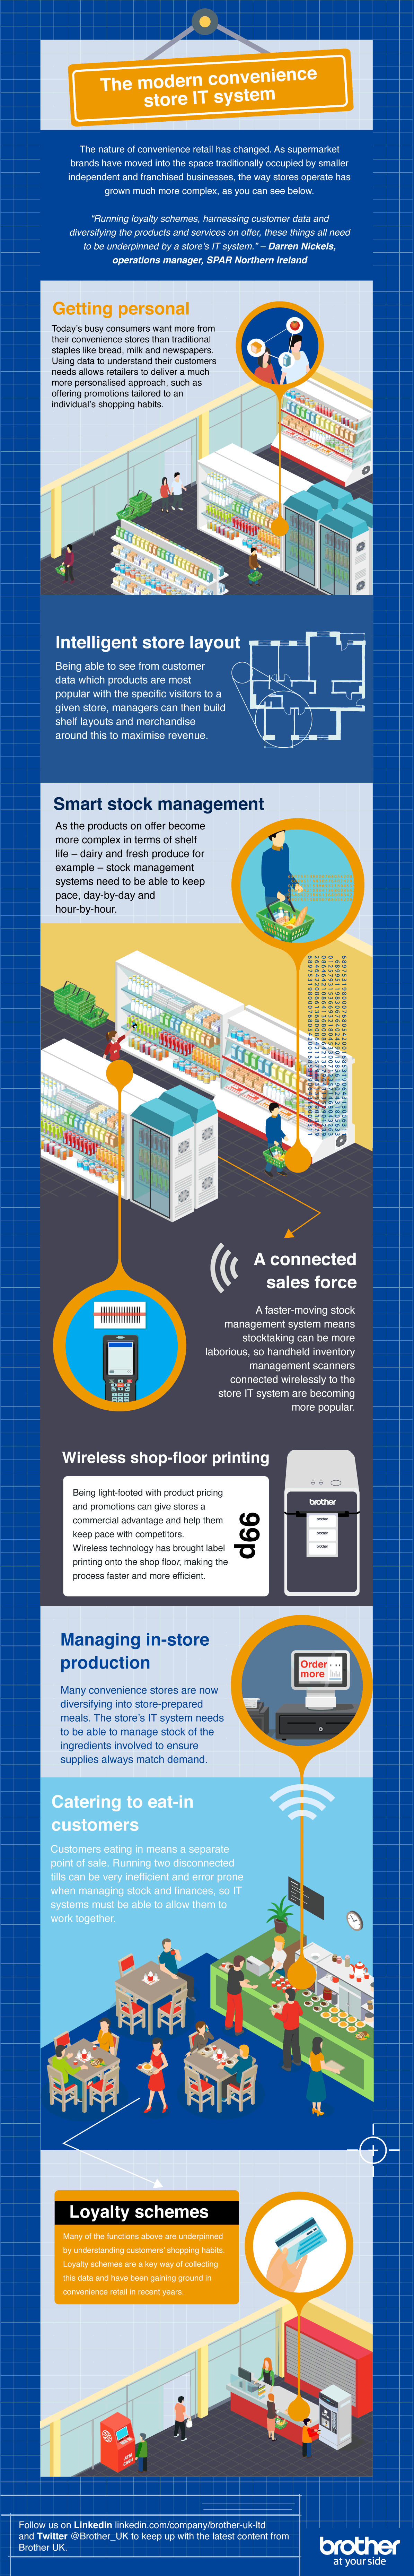 Brother modern convenience store infographic, showing technology advances in retail